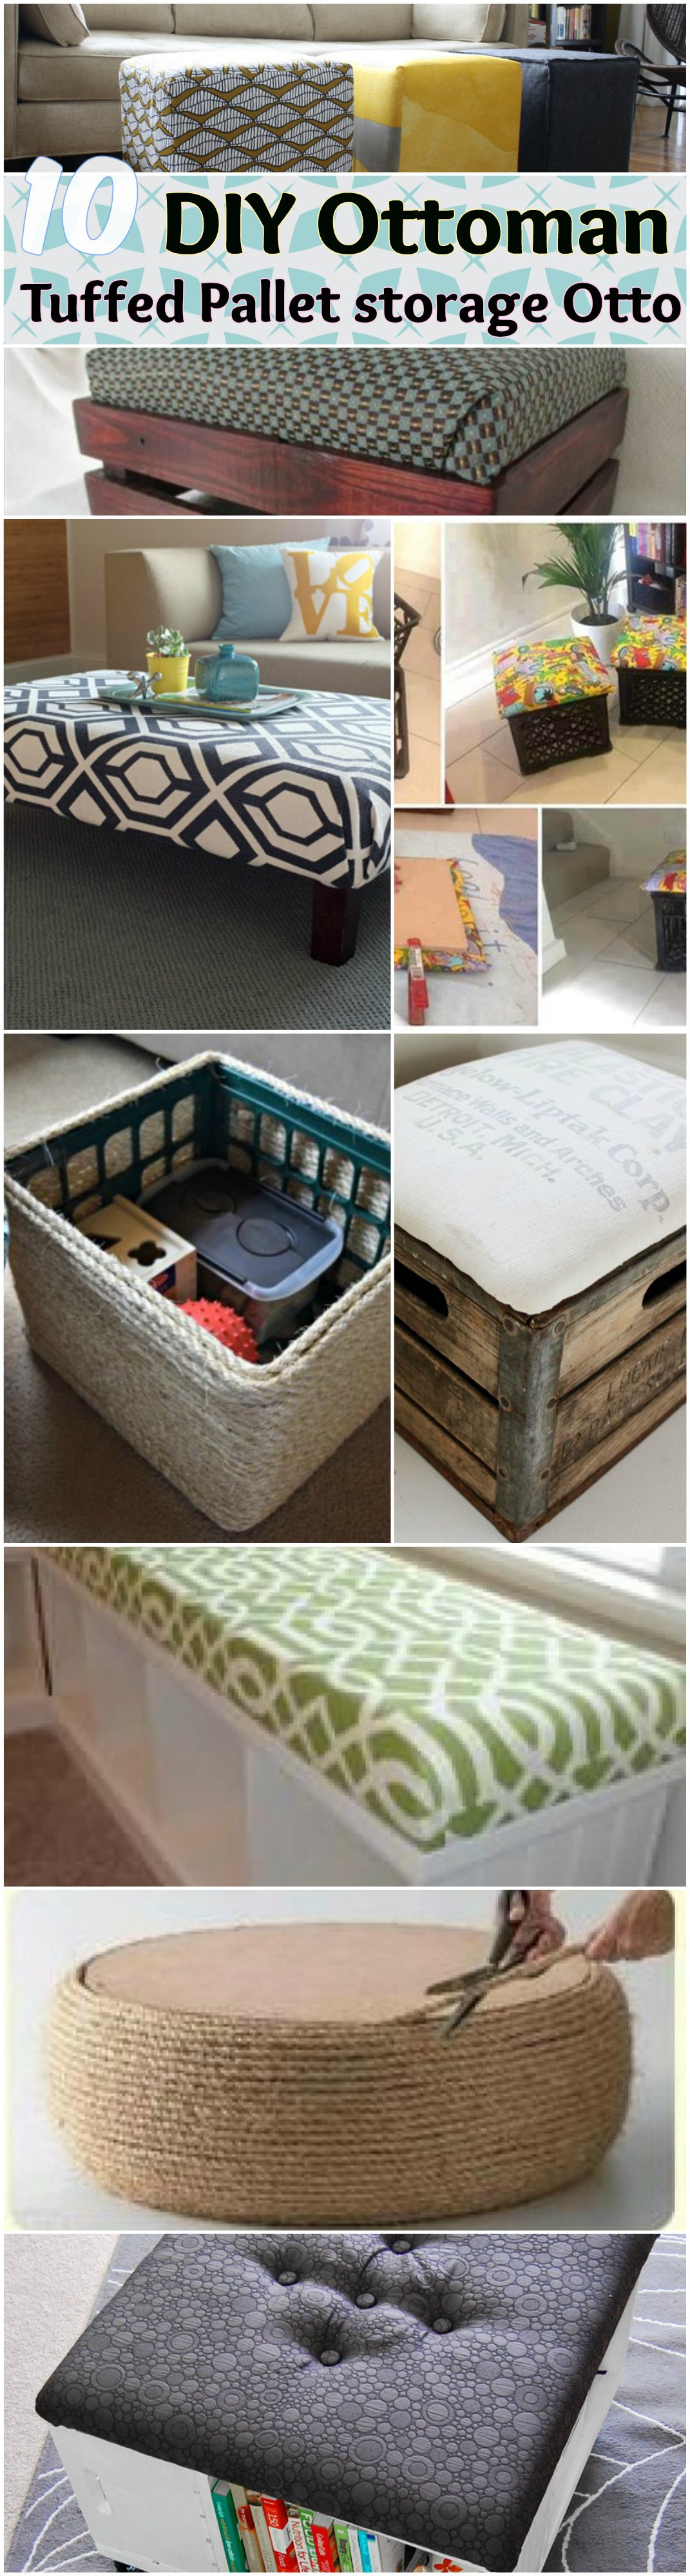 Pleasing 15 Diy Storage Ottoman Ideas Frugal Ways With Recycle Pdpeps Interior Chair Design Pdpepsorg